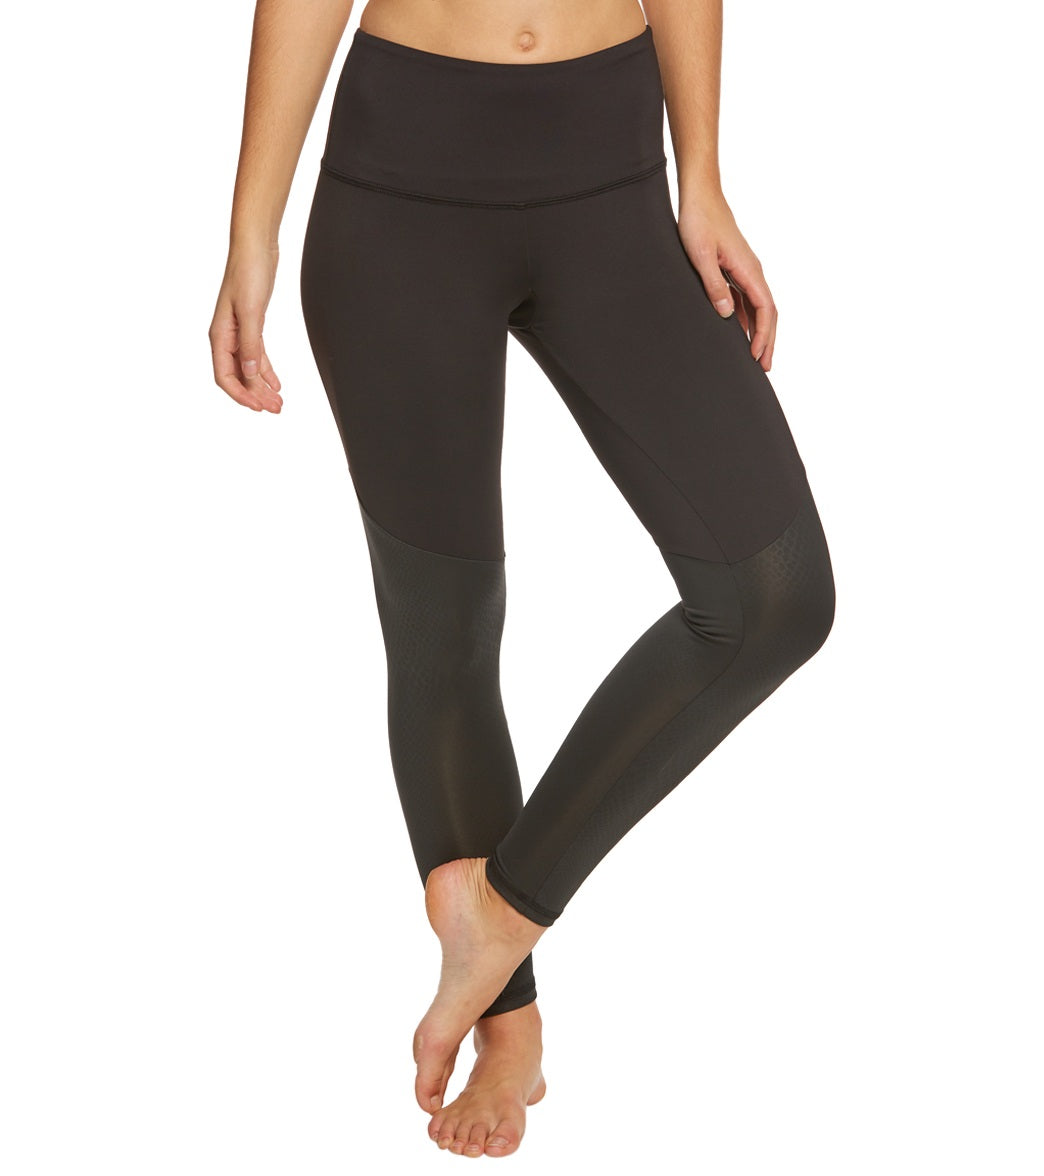 2fef5f3aca1728 Strut-This The Jax Yoga Leggings at YogaOutlet.com - Free Shipping